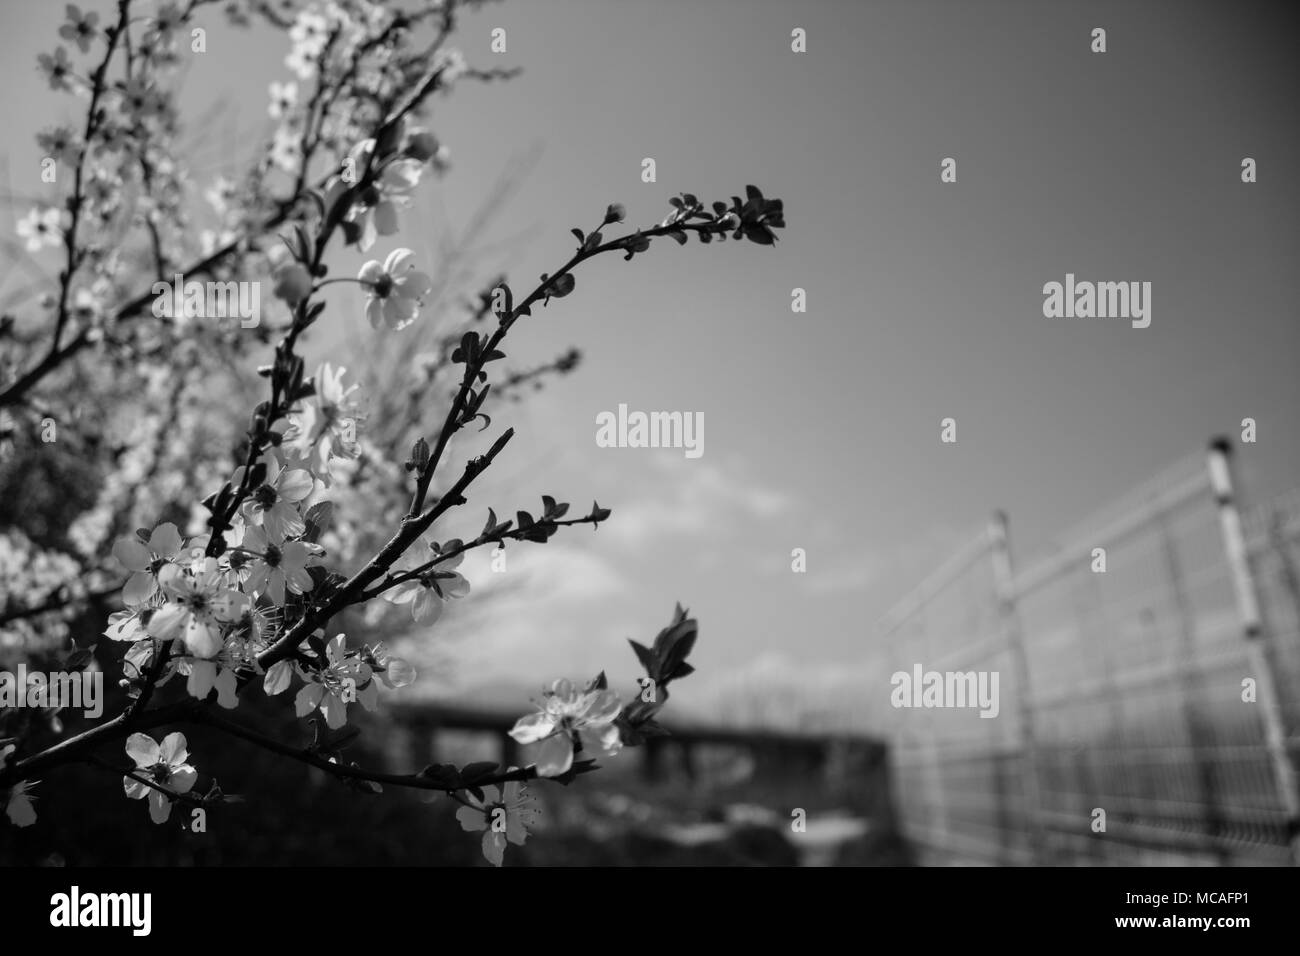 Close up of tree blossom with blurred background. - Stock Image